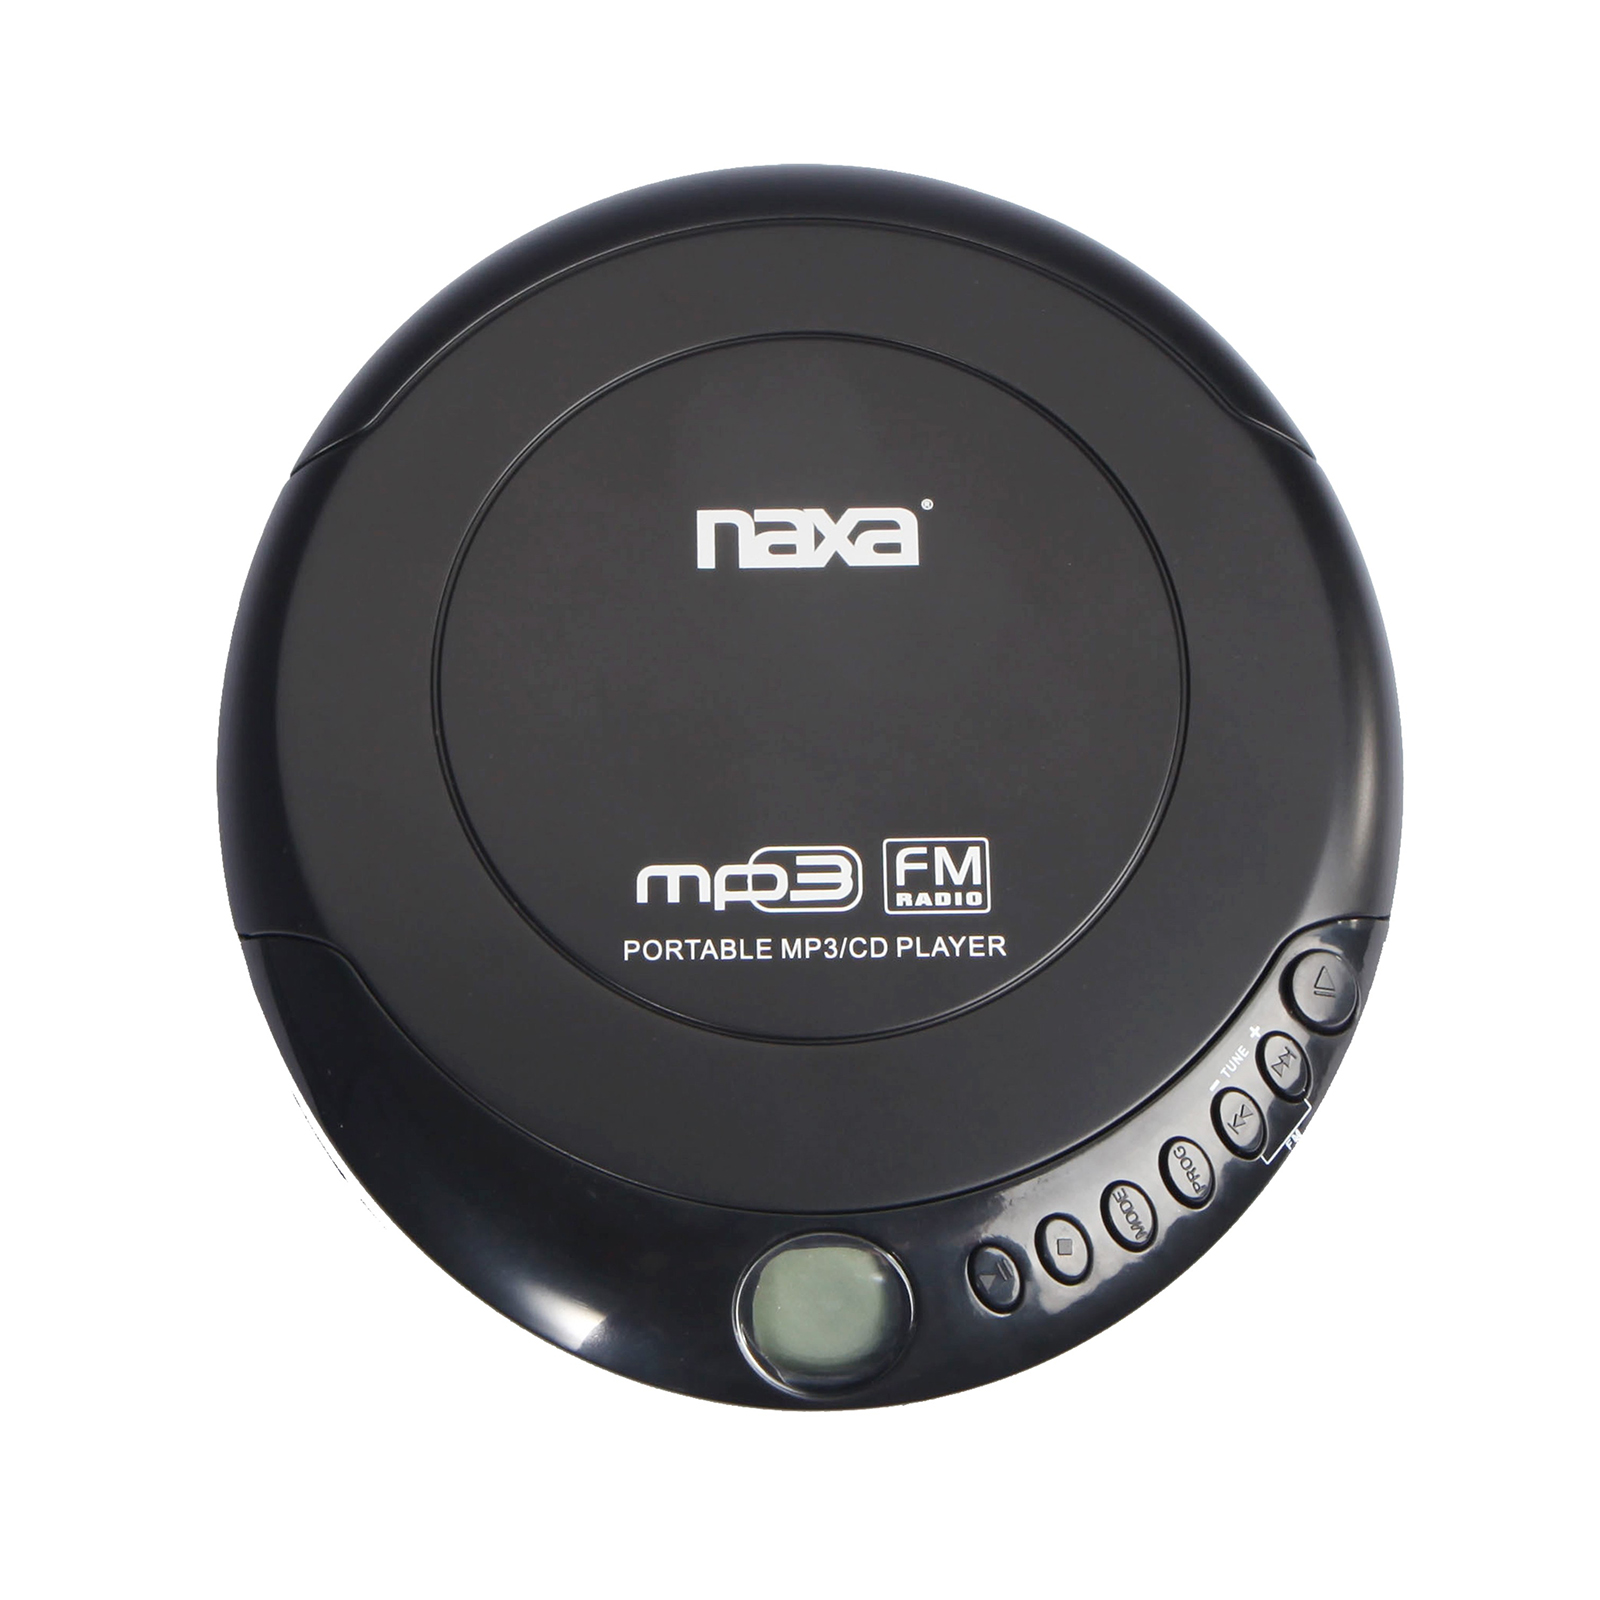 Slim Personal MP3/CD Player with 100 Second Anti-Shock & FM Scan Radio